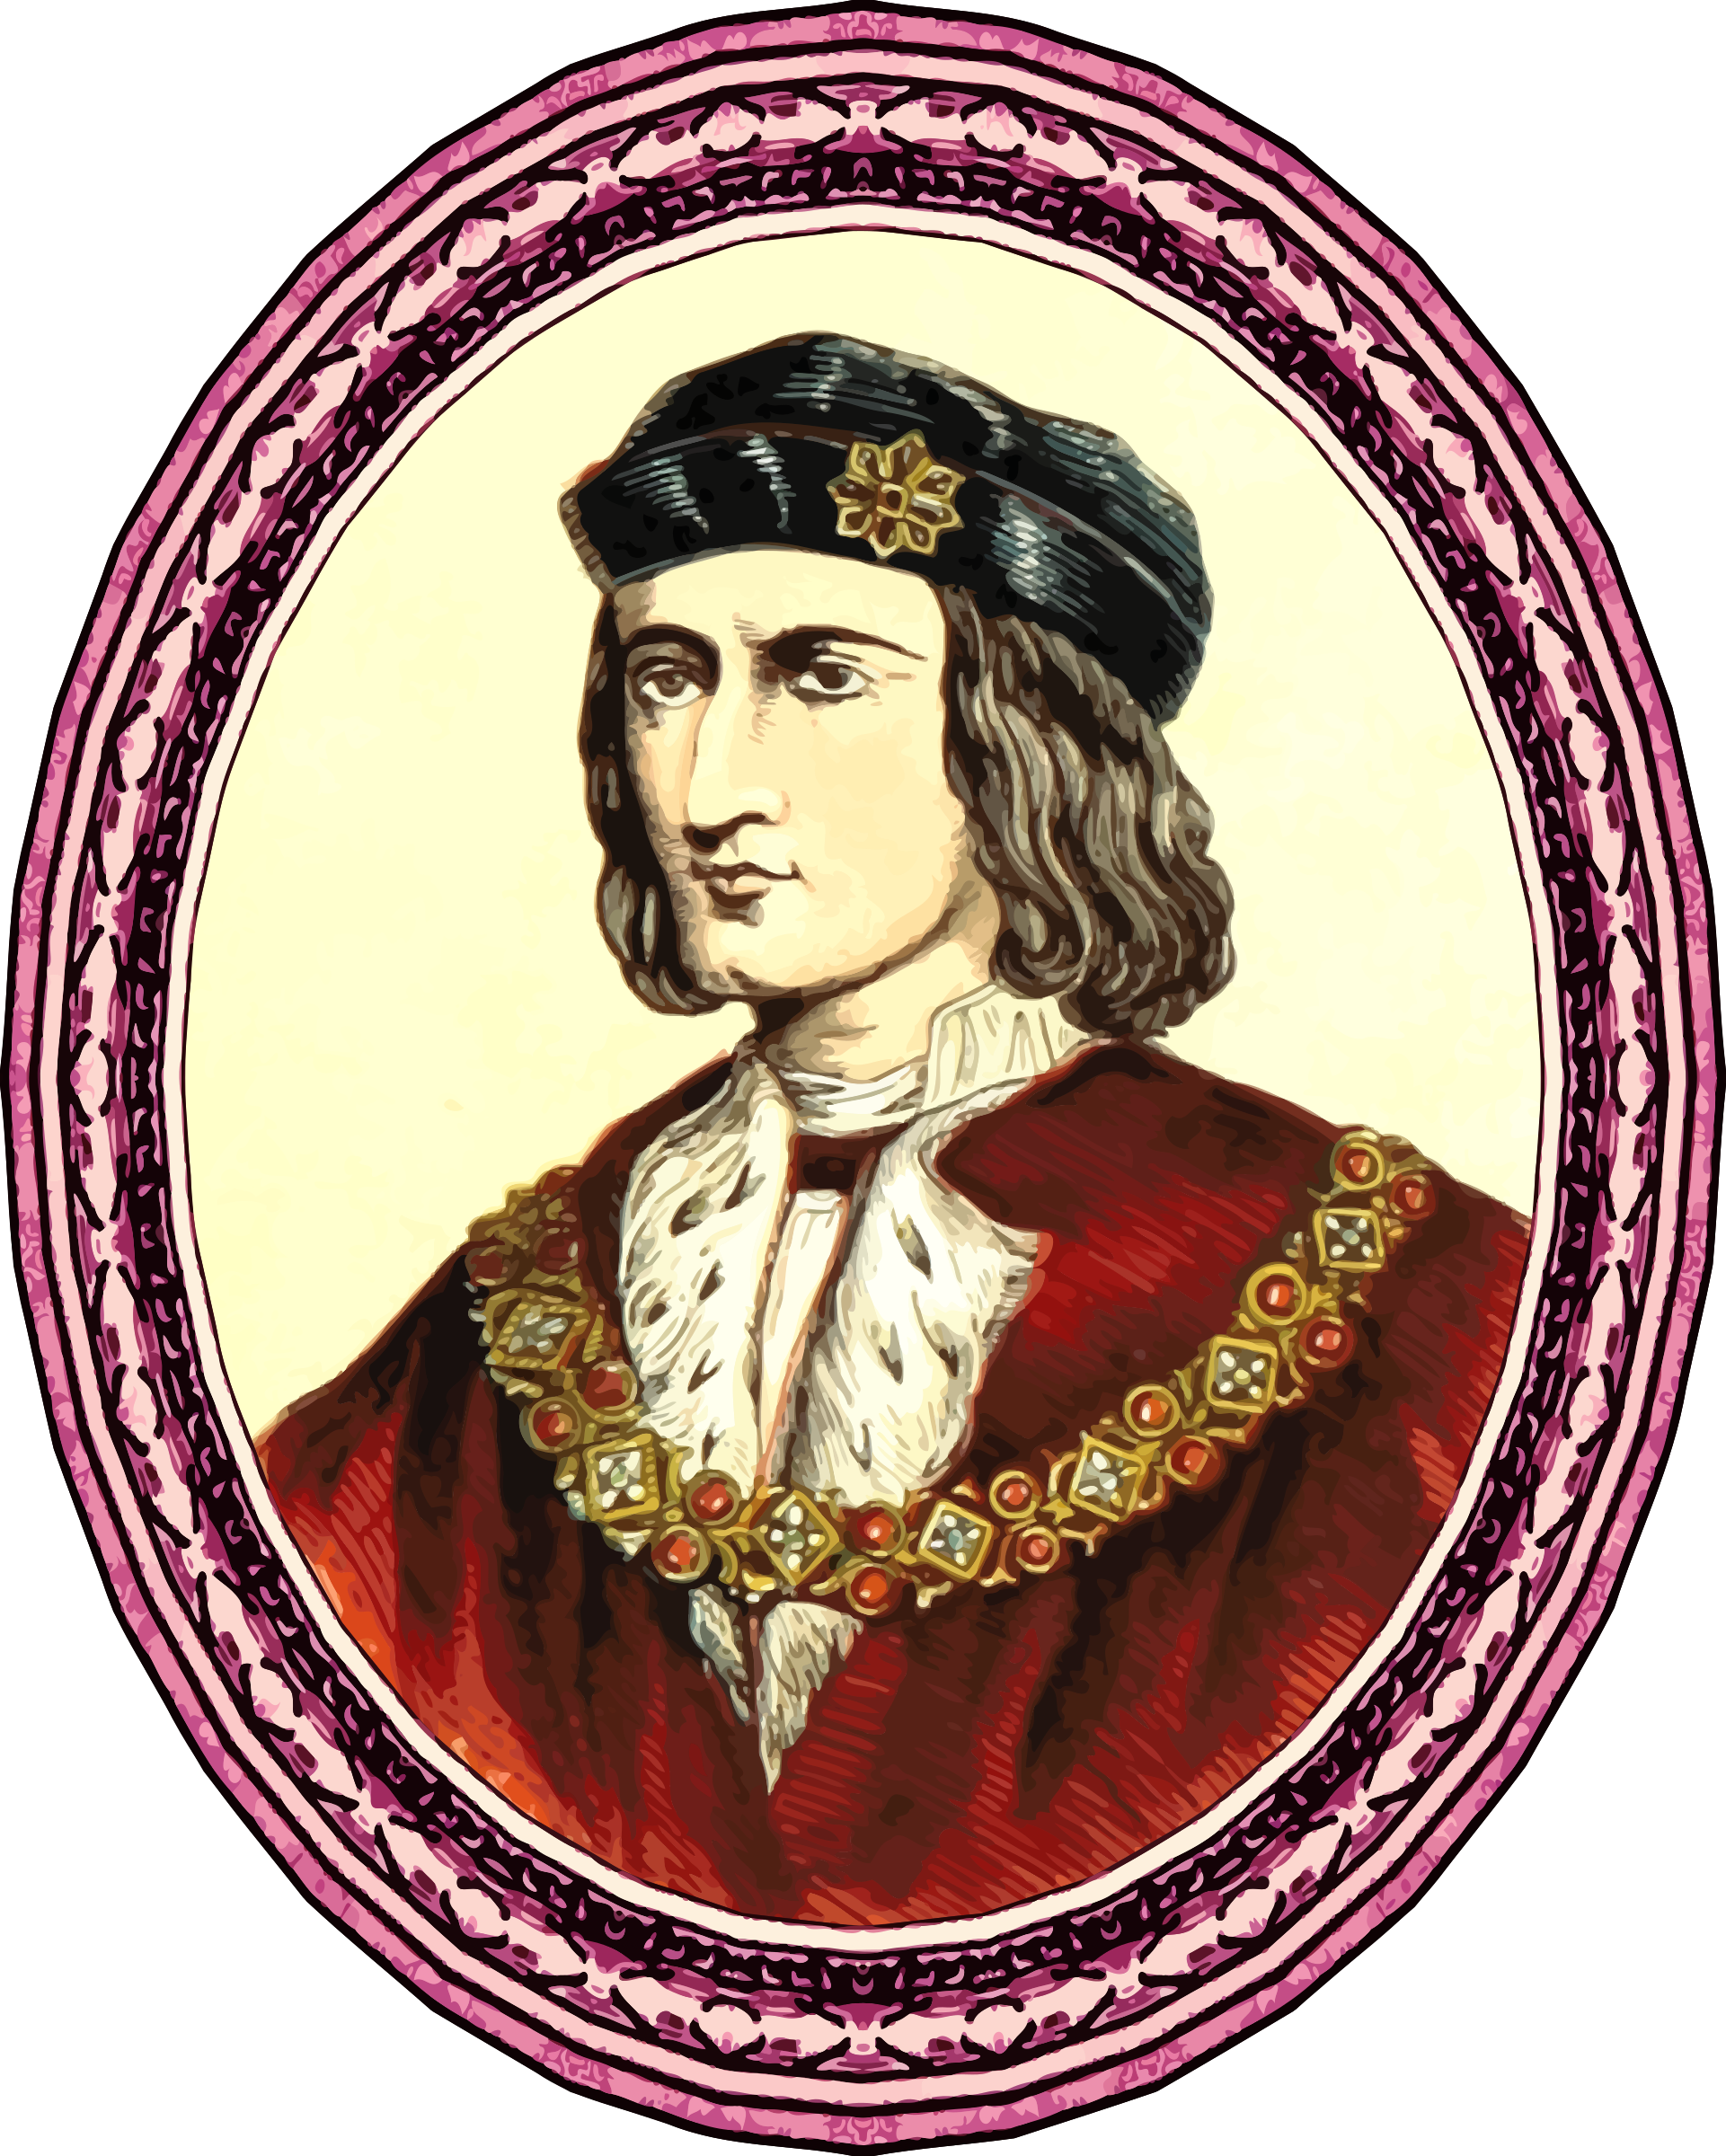 King Richard III (framed) by Firkin